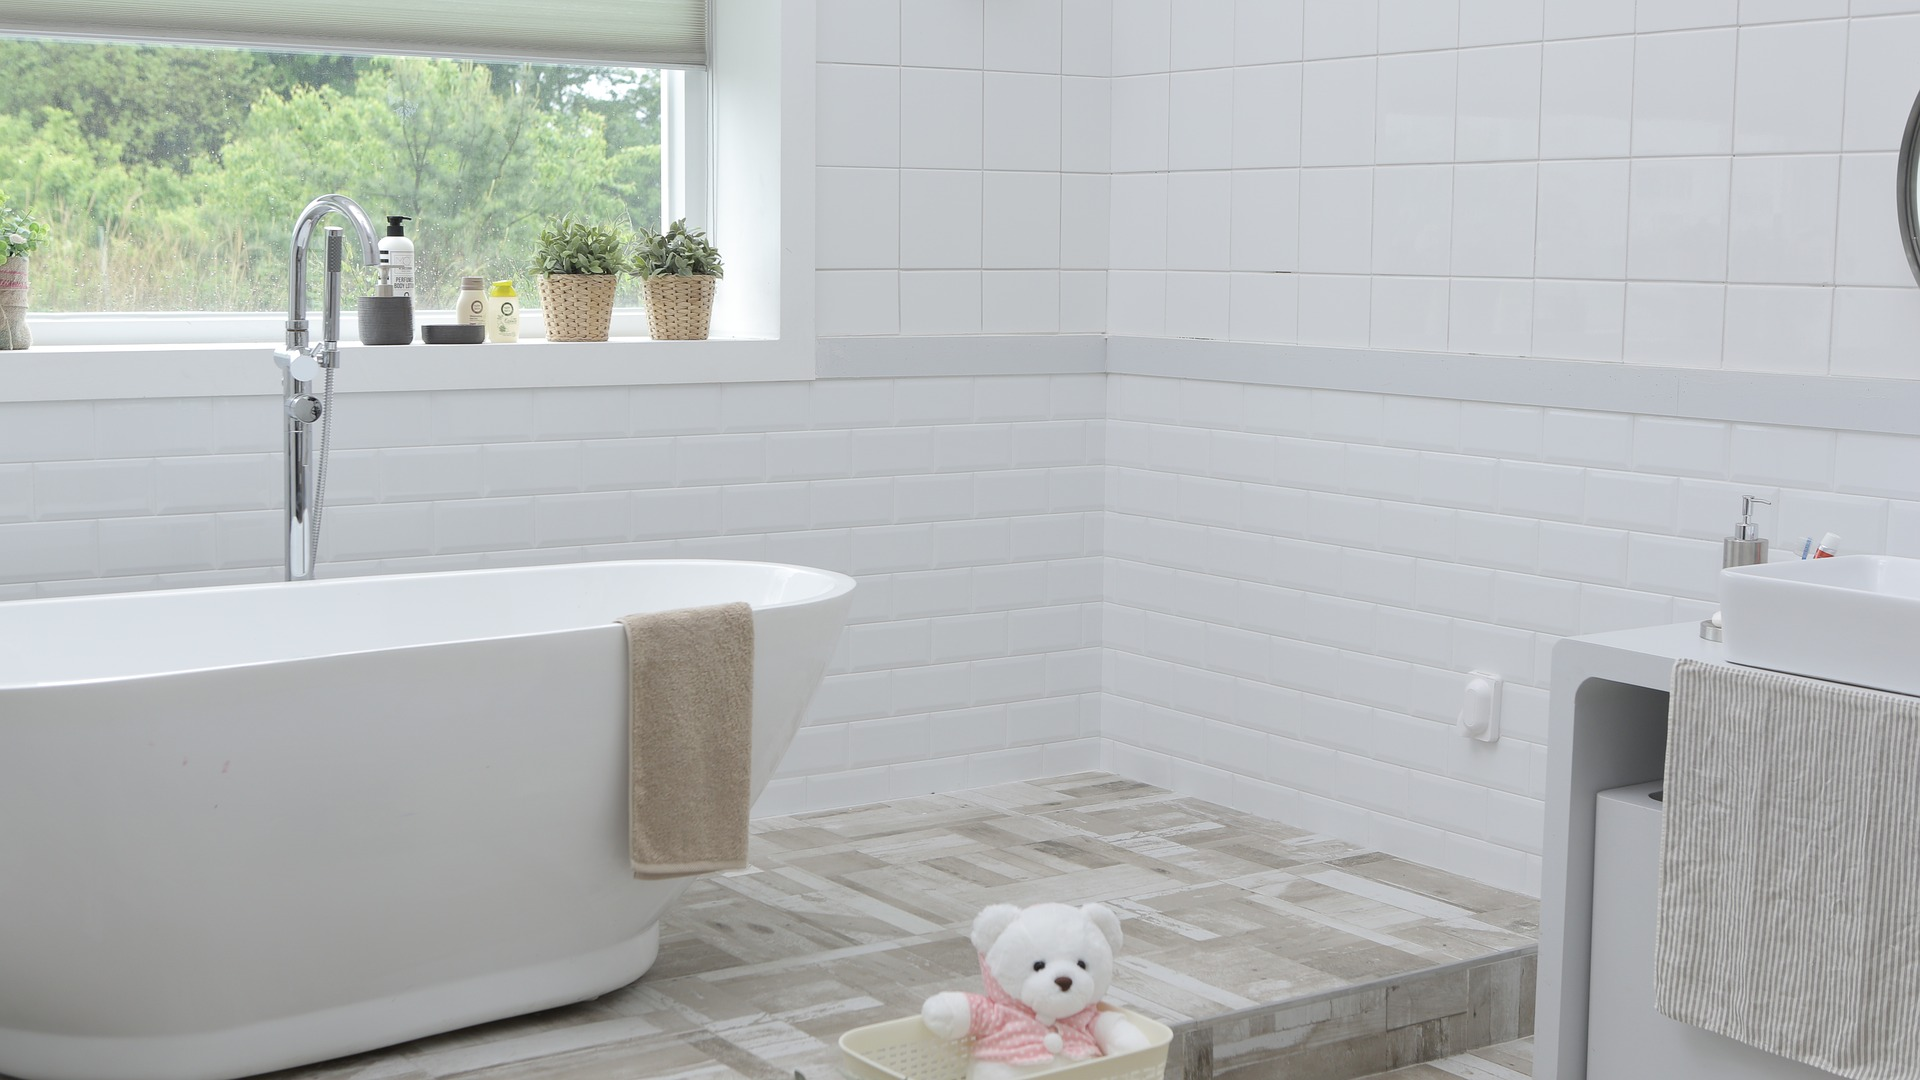 3 Things To Consider Before Renovating Your Bathroom